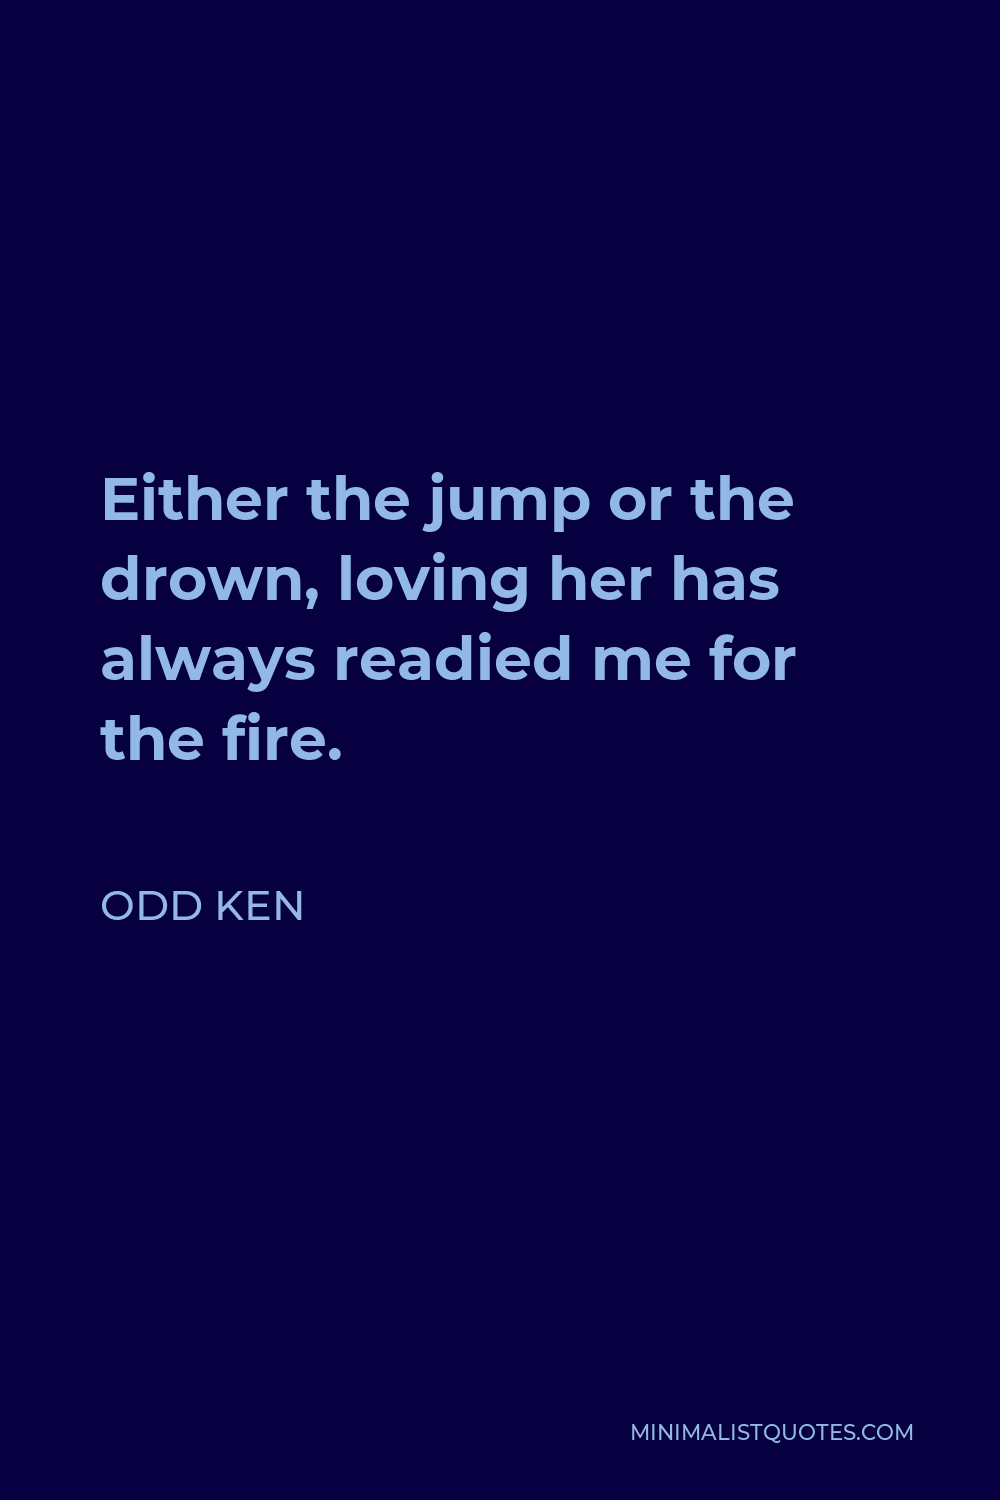 Odd Ken Quote - Either the jump or the drown, loving her has always readied me for the fire.